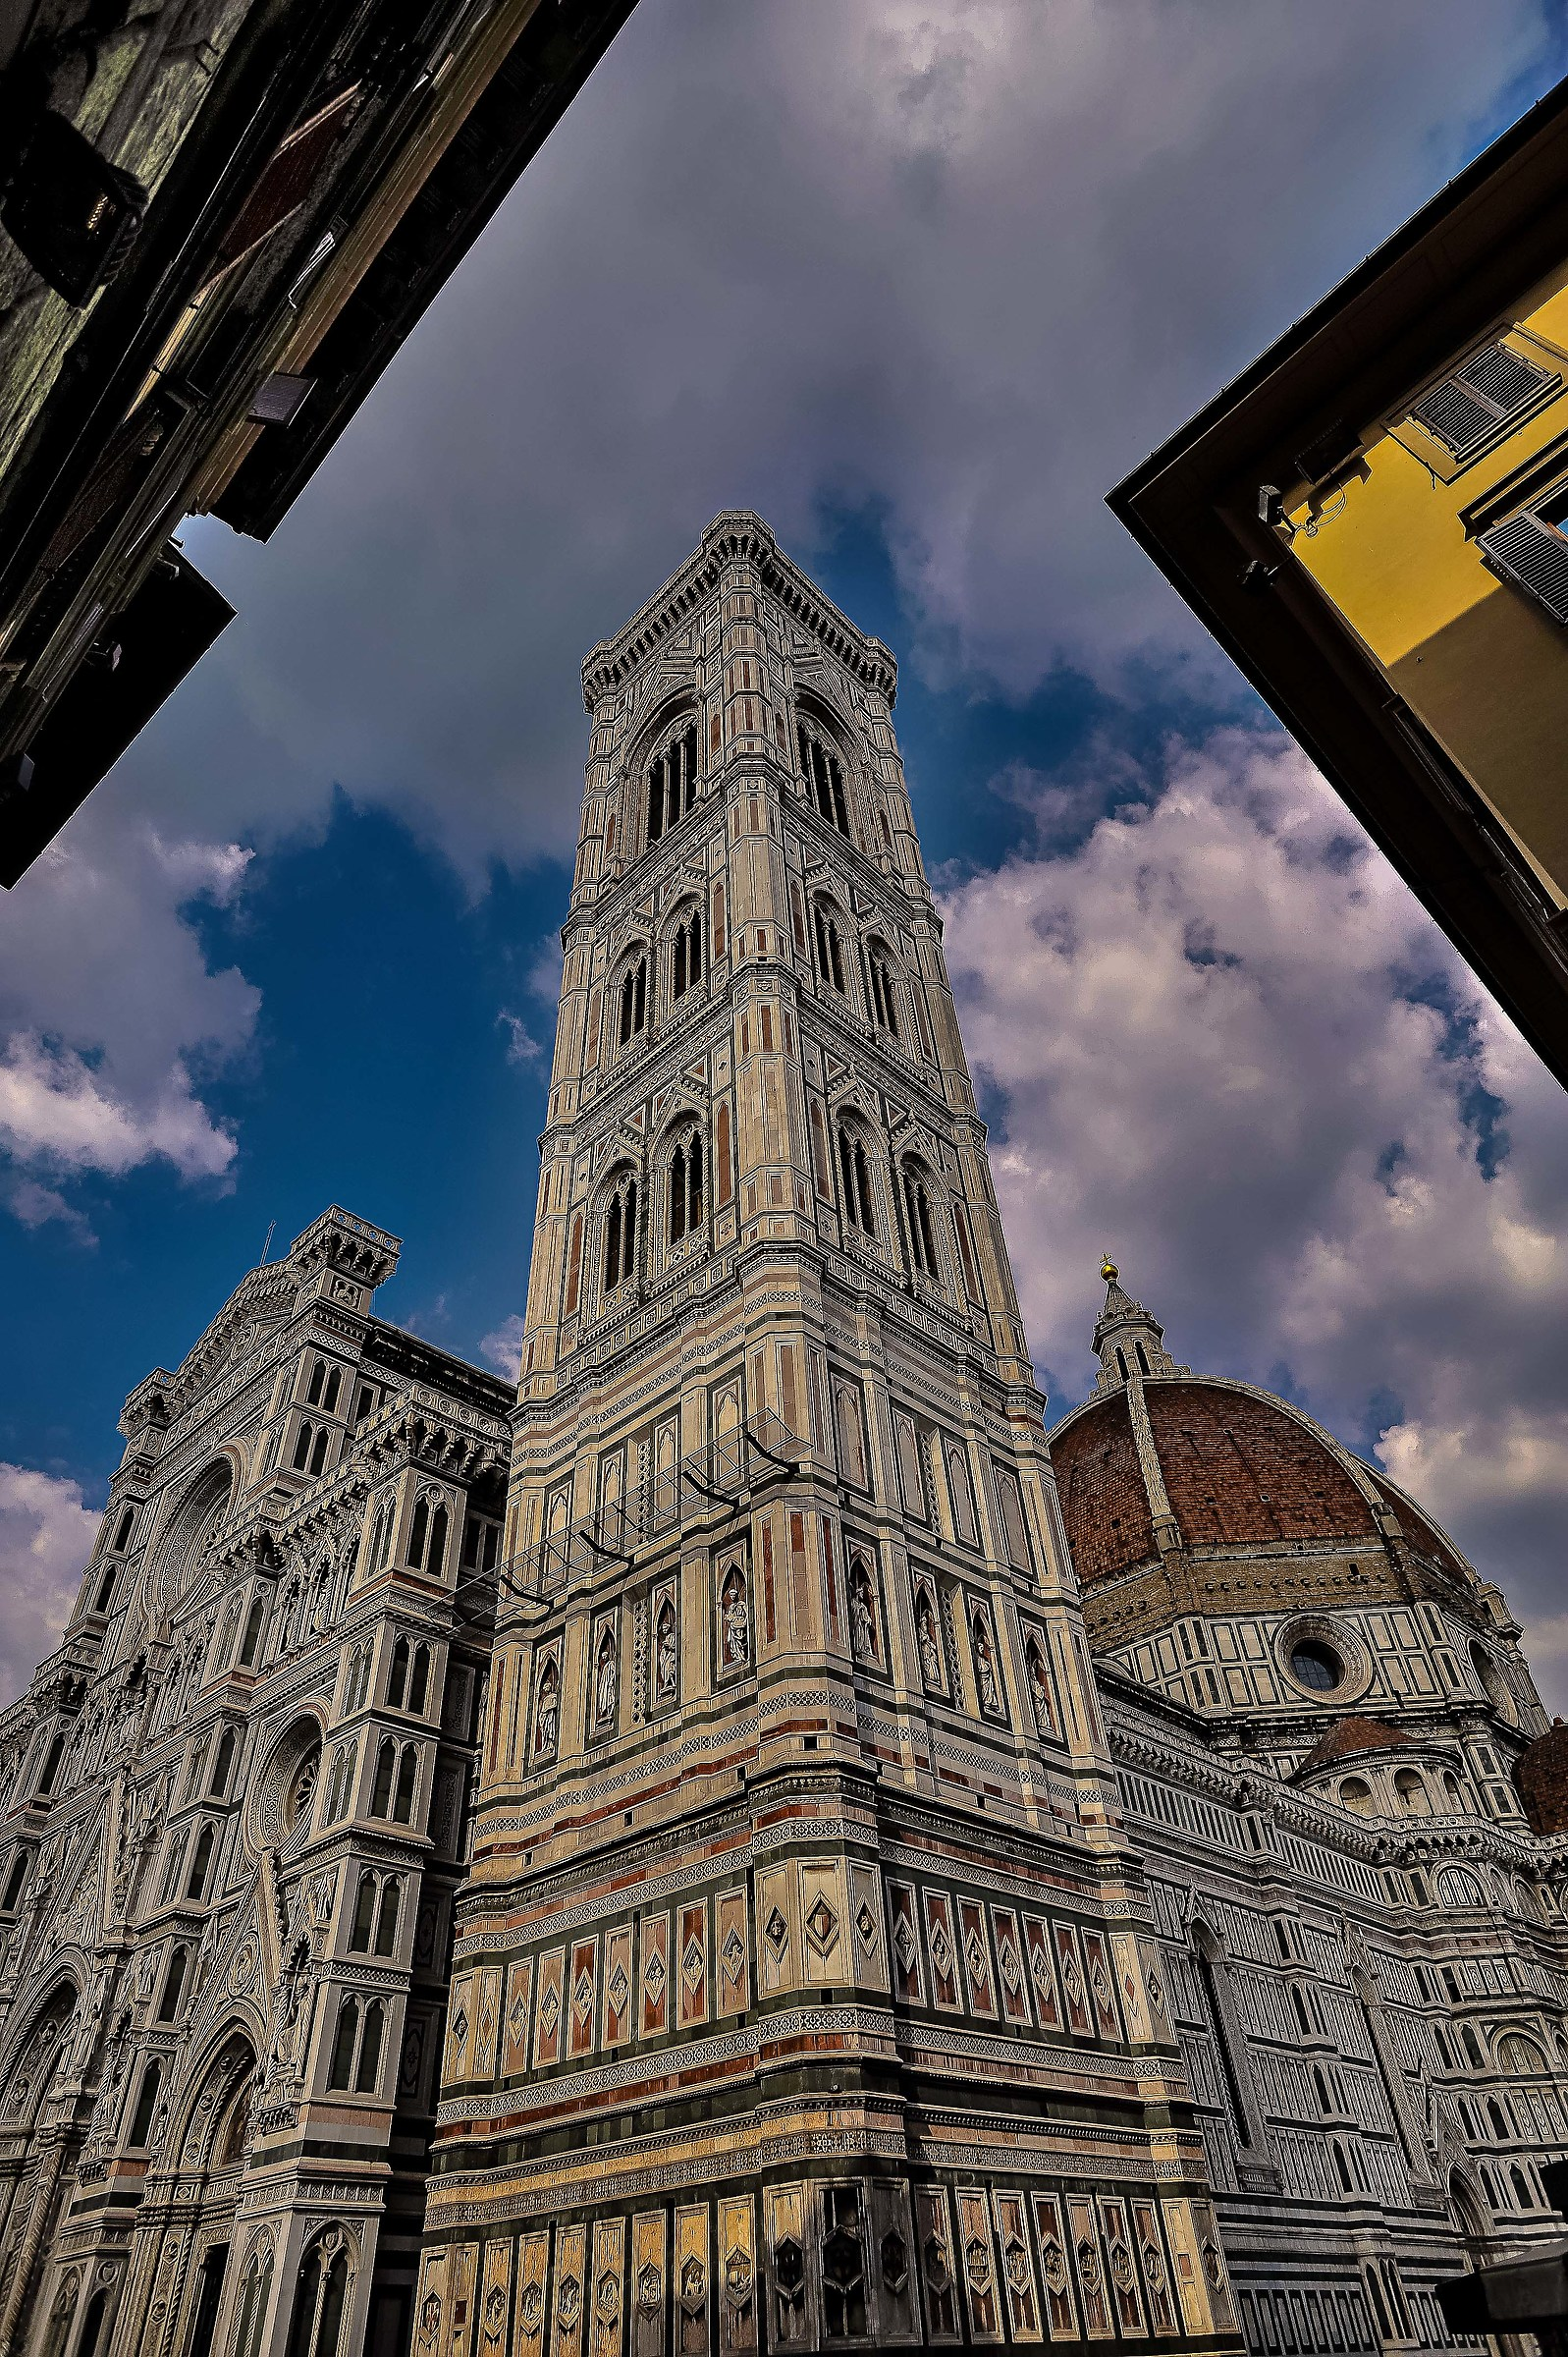 Giotto's bell tower...